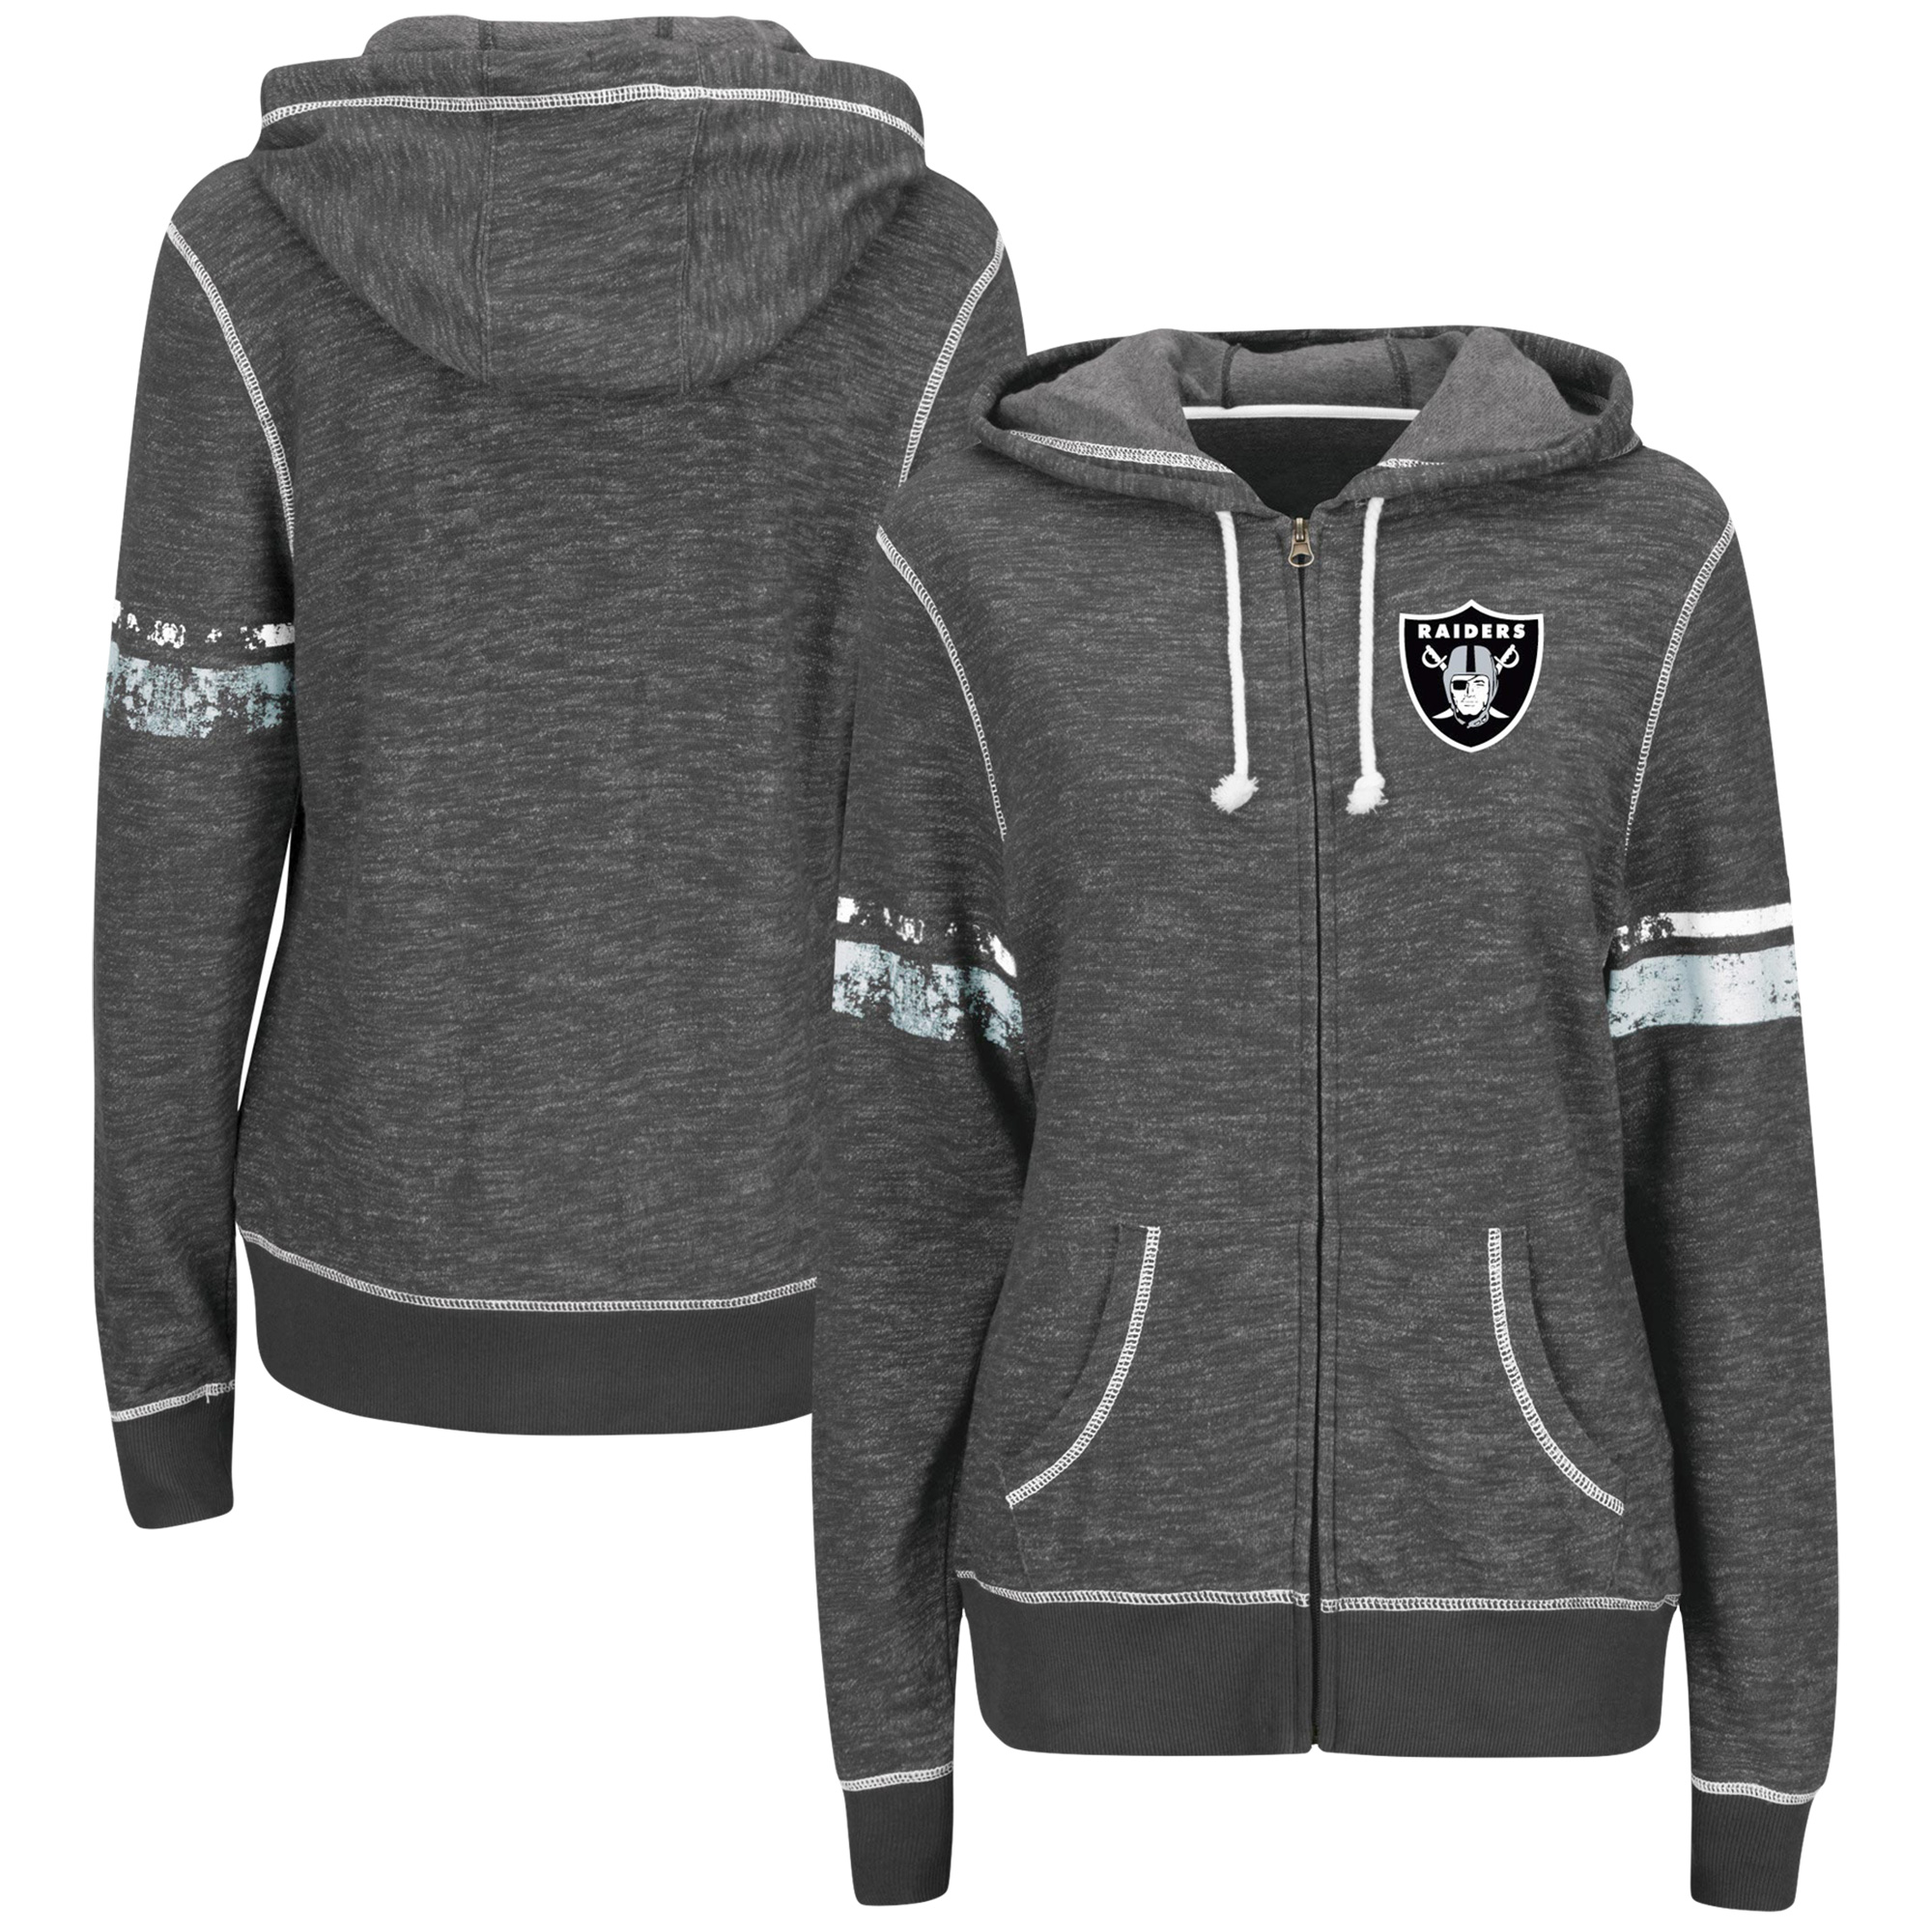 Oakland Raiders Majestic Women's Plus Size Athletic Tradition Full-Zip Hoodie - Charcoal